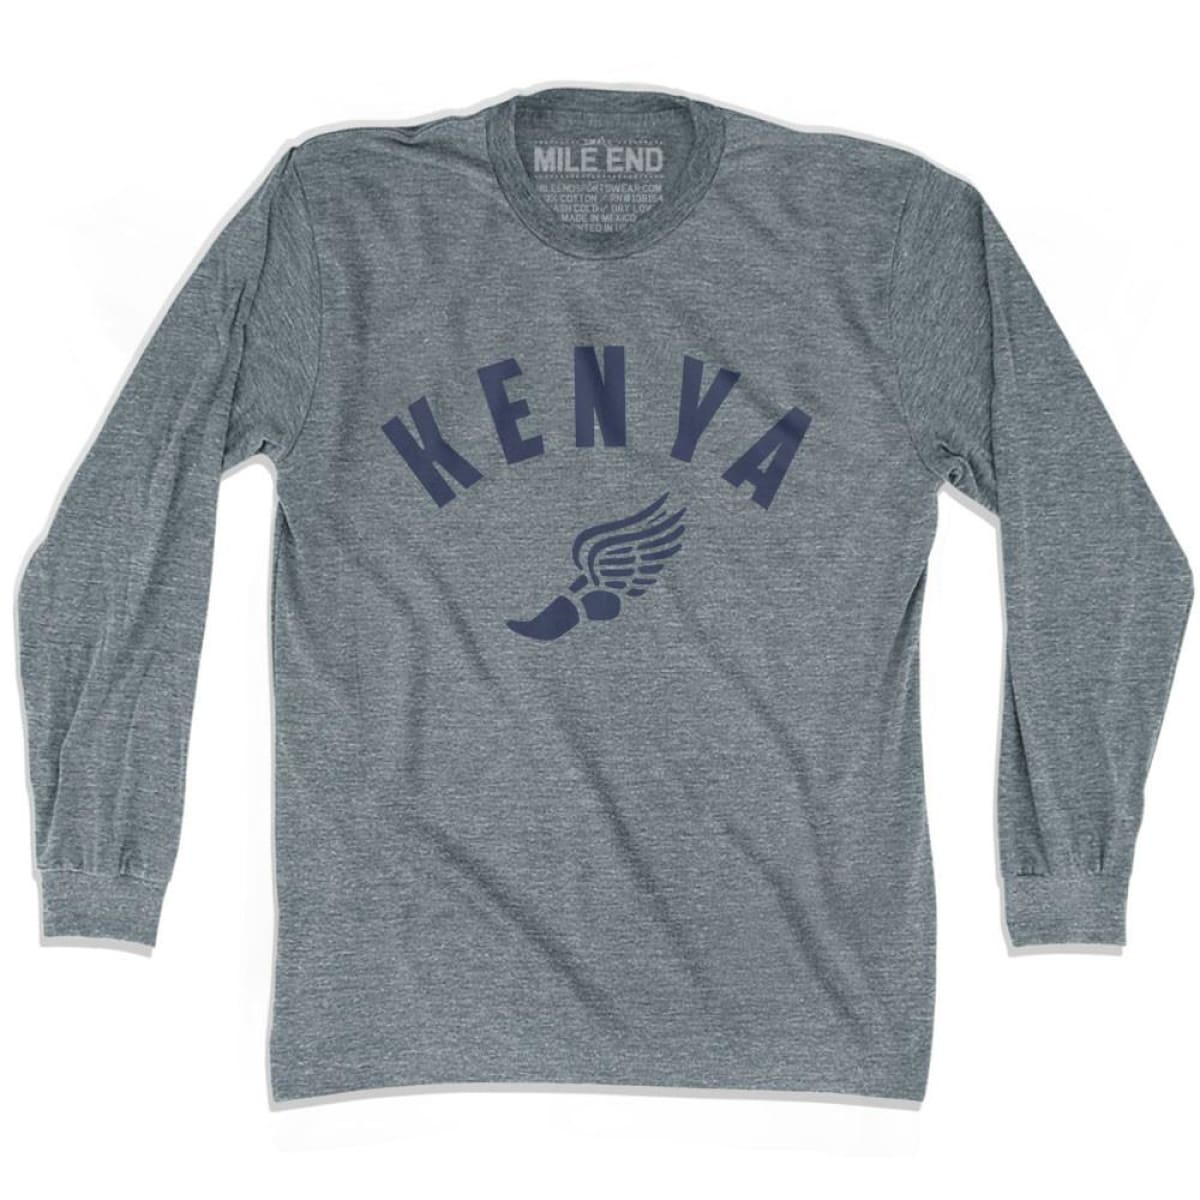 Kenya Track Long Sleeve T-shirt - Athletic Grey / Adult X-Small - Mile End Track